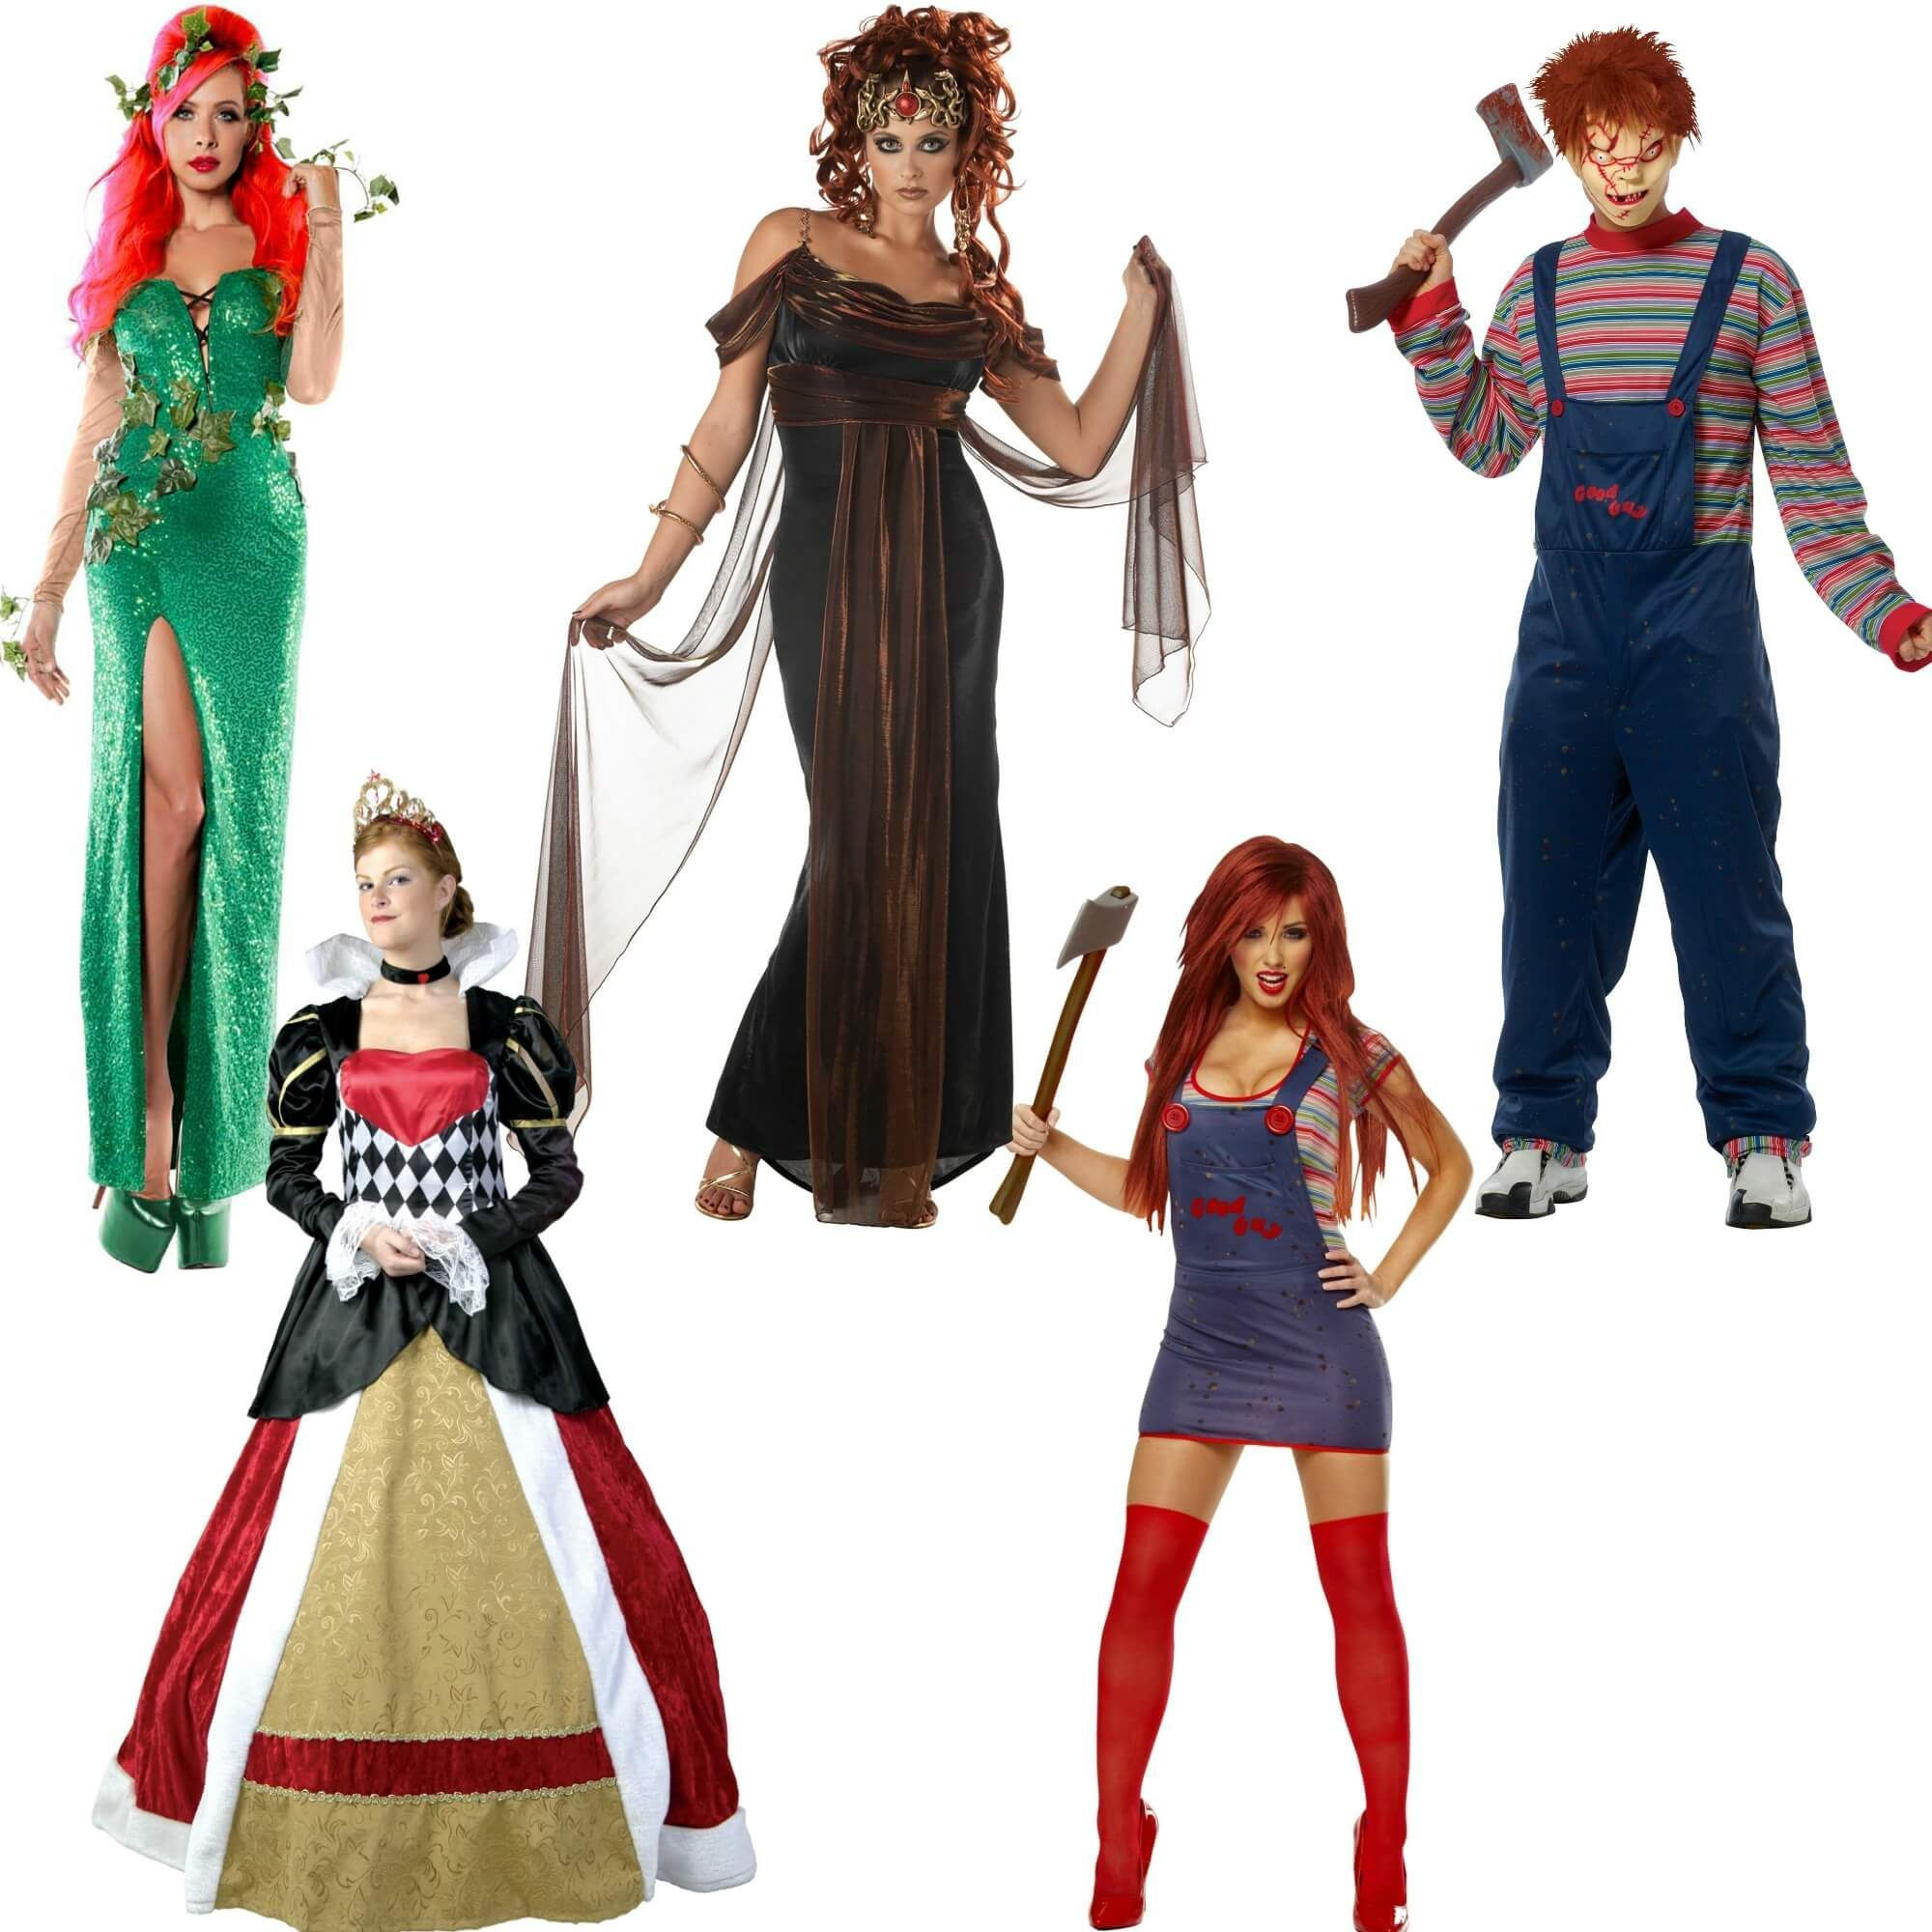 Halloween Costumes For Redheads Halloween Costumes Redhead Red Hair Halloween Costumes Red Head Halloween Costumes